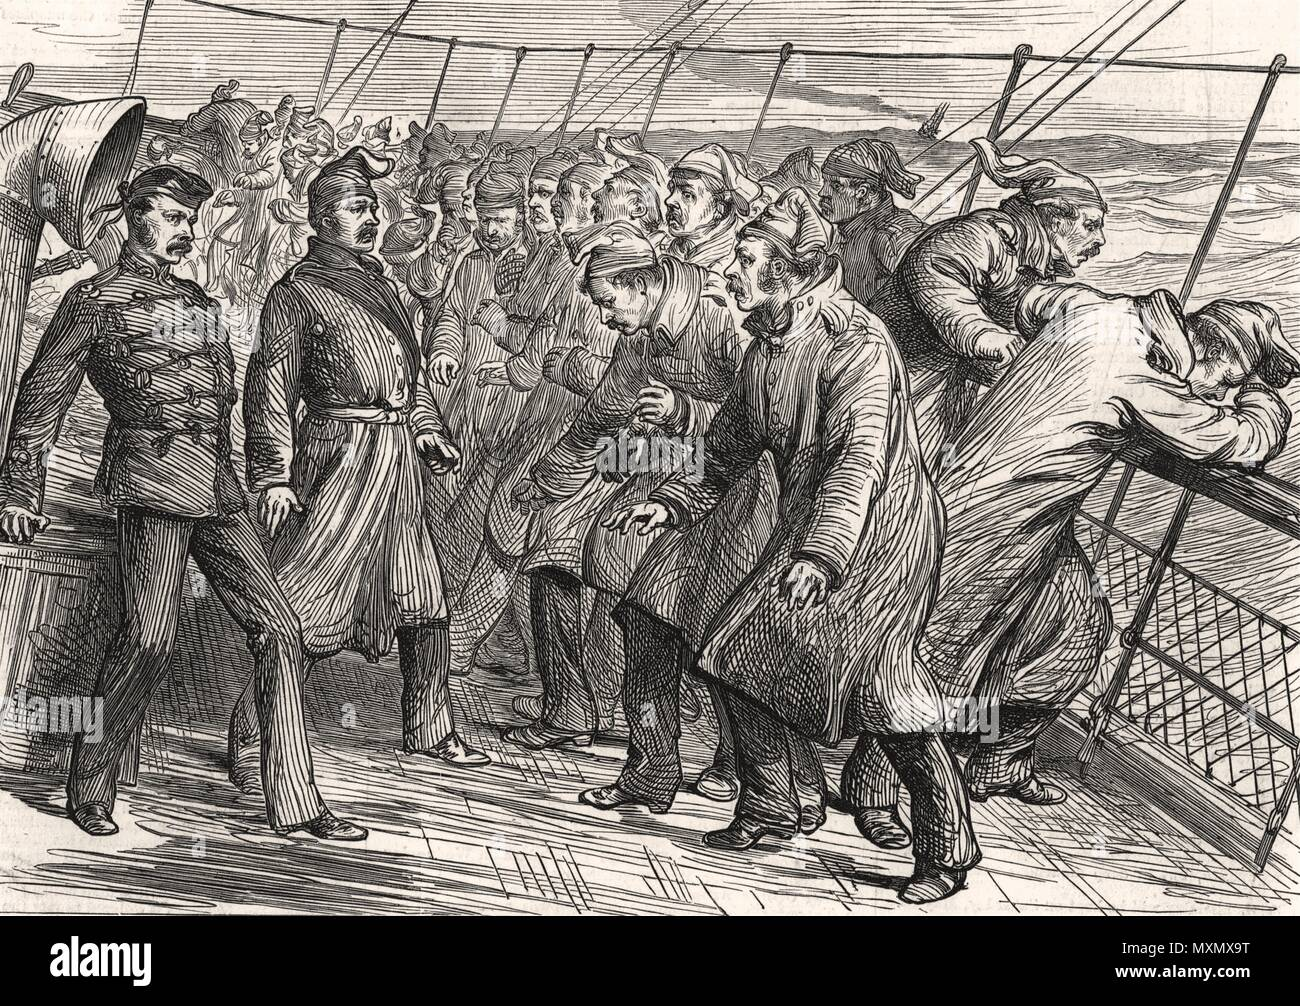 Kaffir War troop transport A tricky parade on board the Nubian 1878. The Illustrated London News - Stock Image